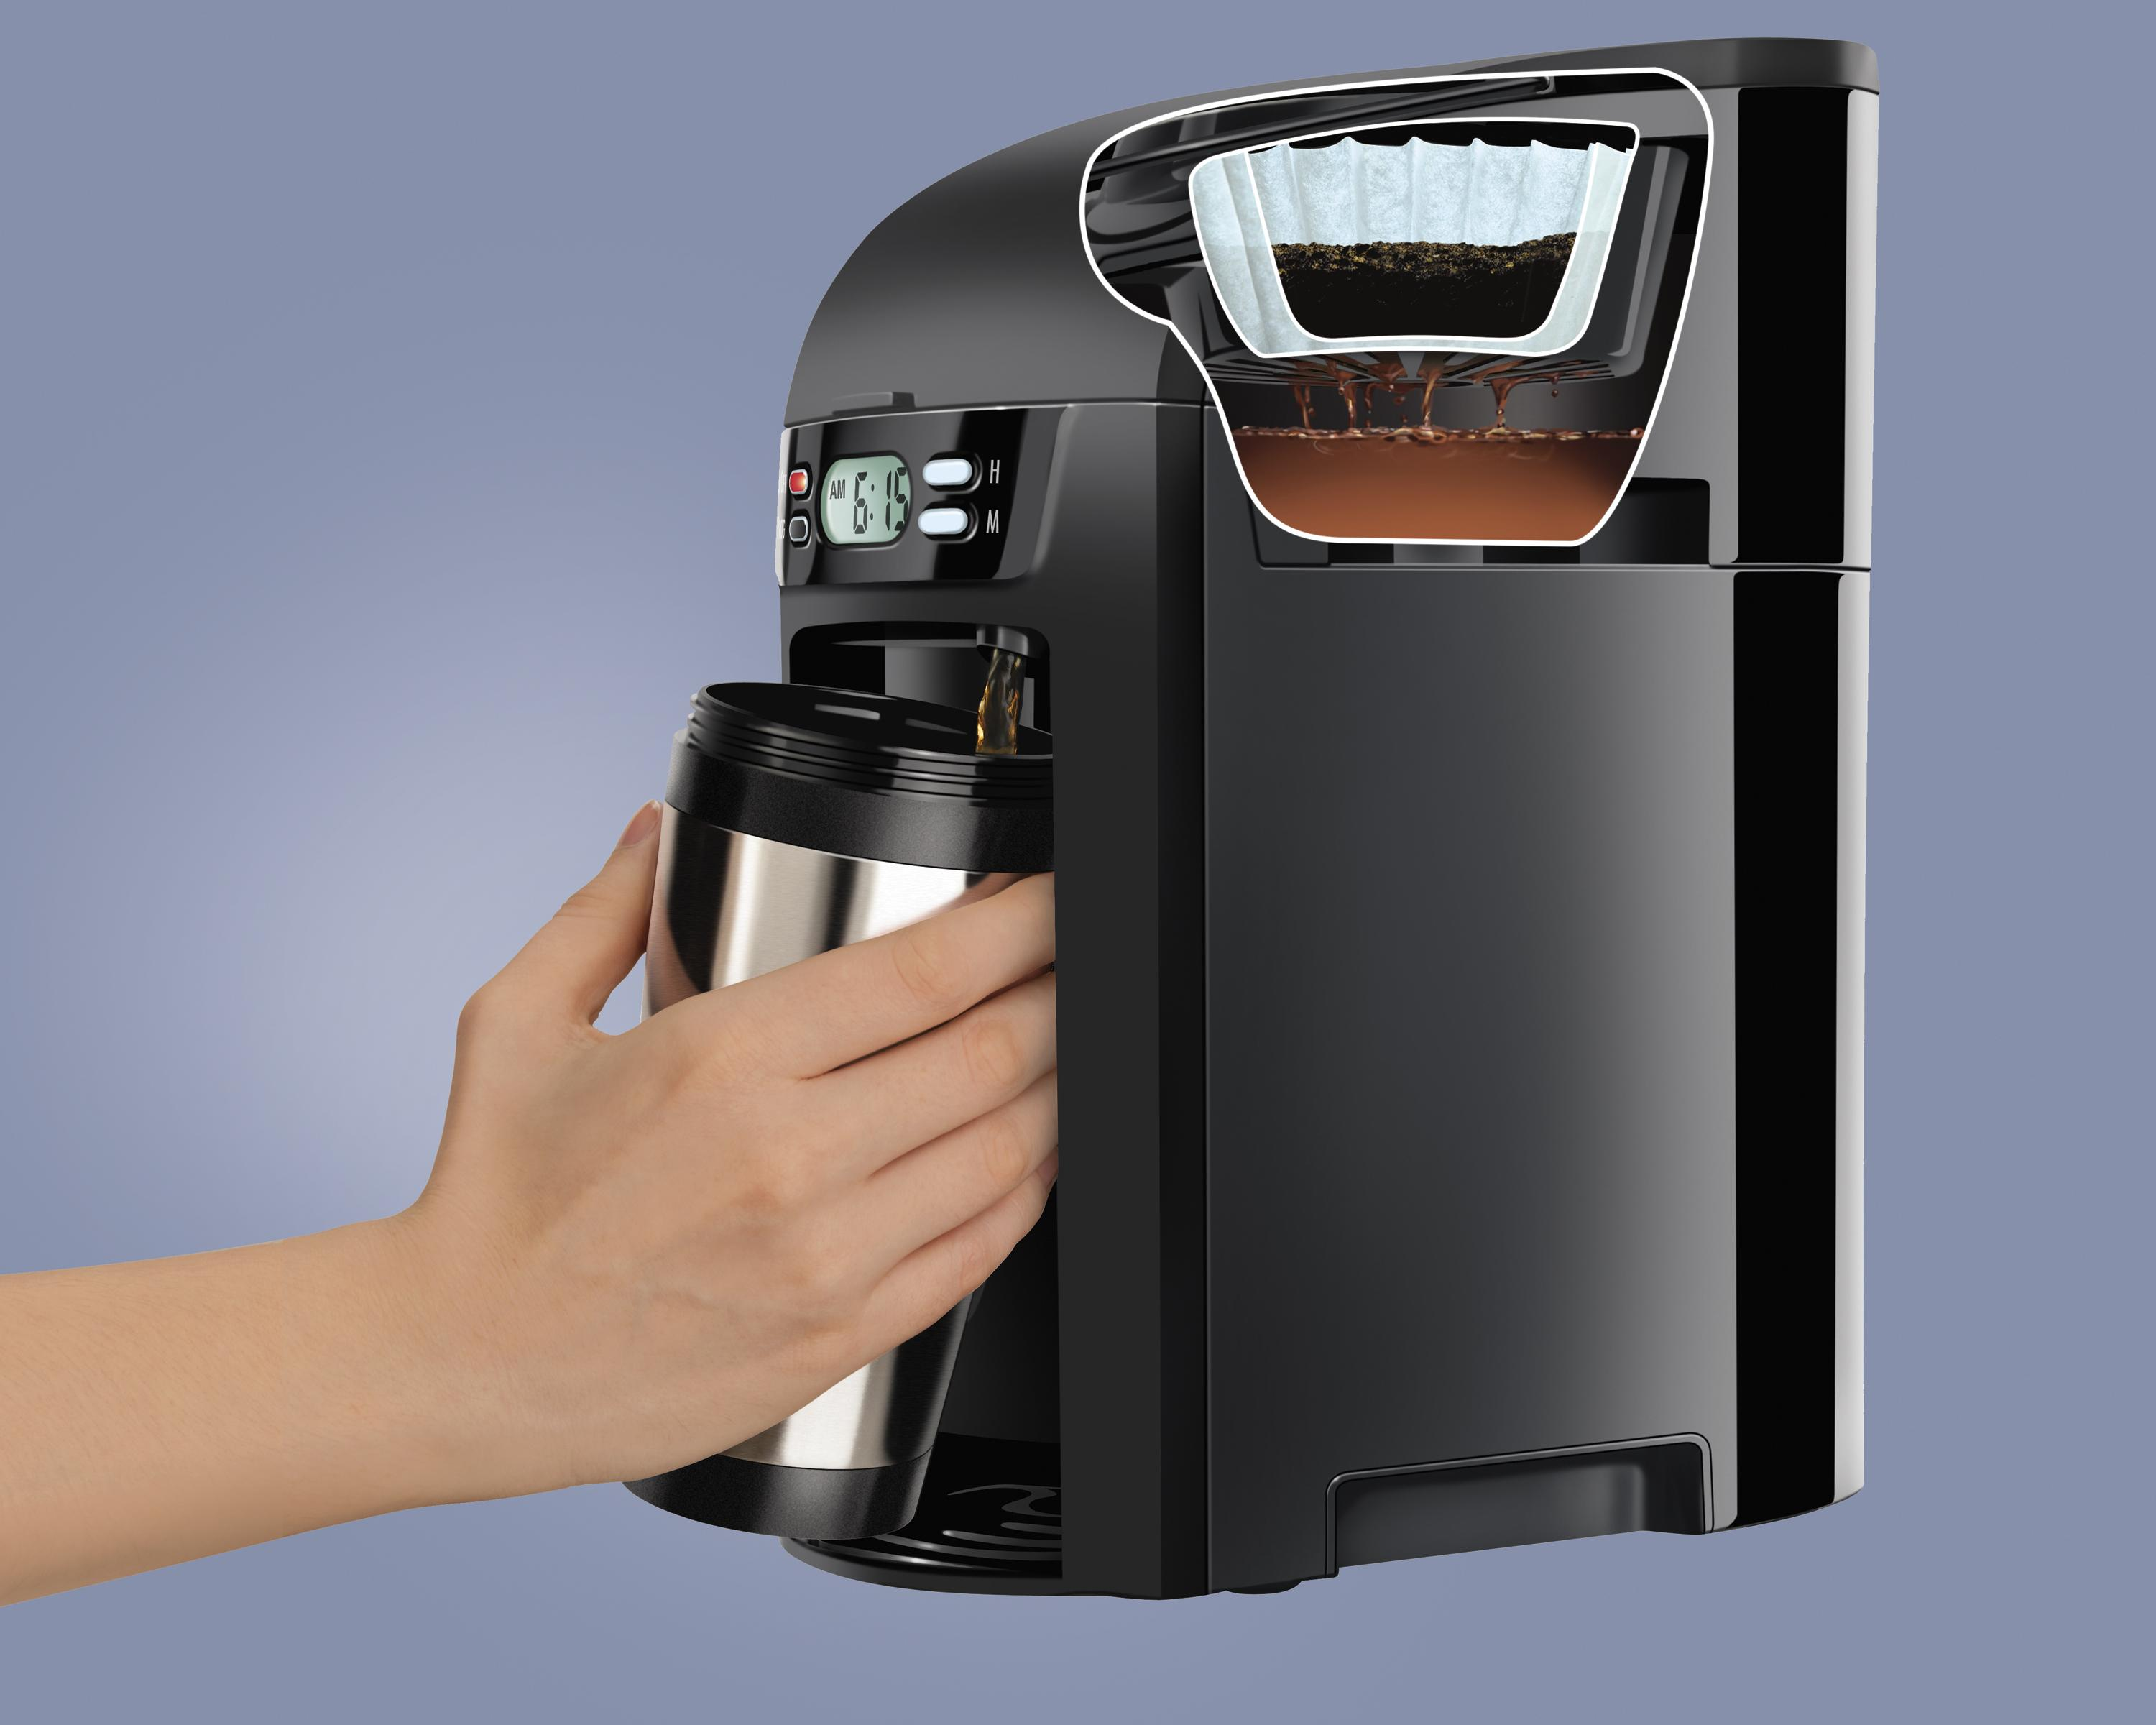 Coffee Maker Without Pot : Amazon.com: Hamilton Beach 6-Cup Coffee Maker, Programmable Brewstation Dispensing Coffee ...